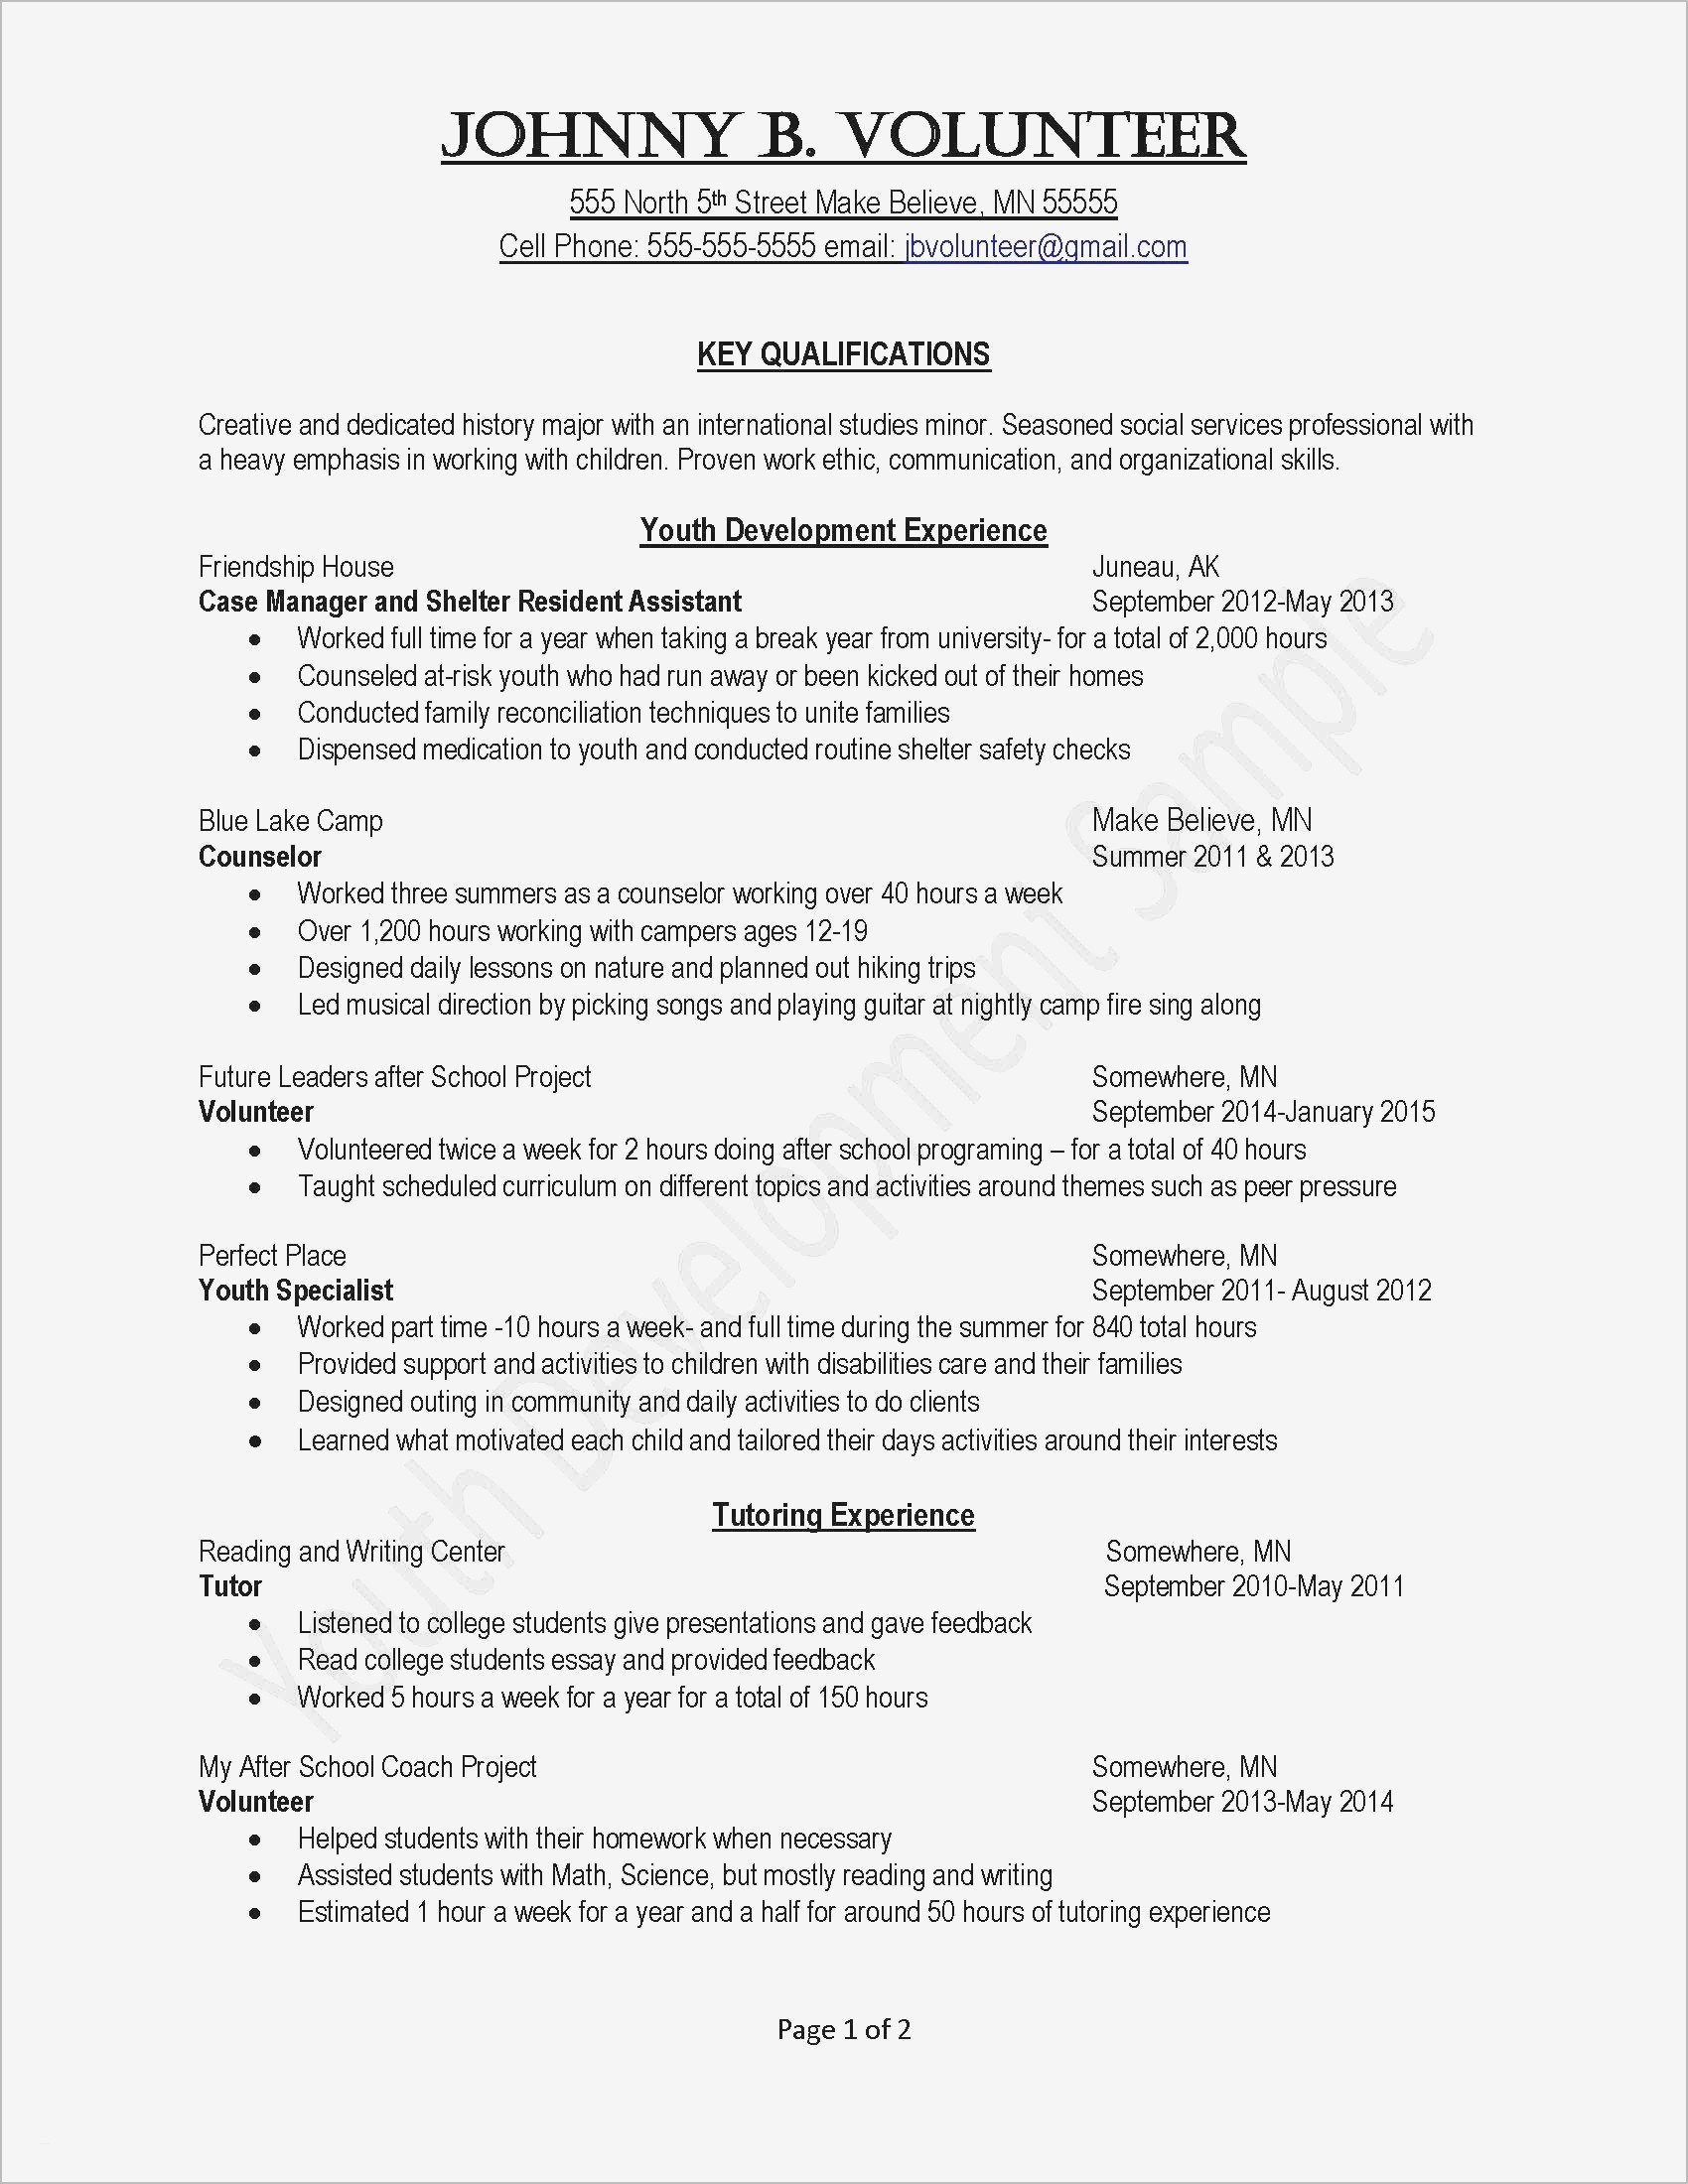 Compassion International Letter Template - Resume Template Line Free Fresh Job Fer Letter Template Us Copy Od